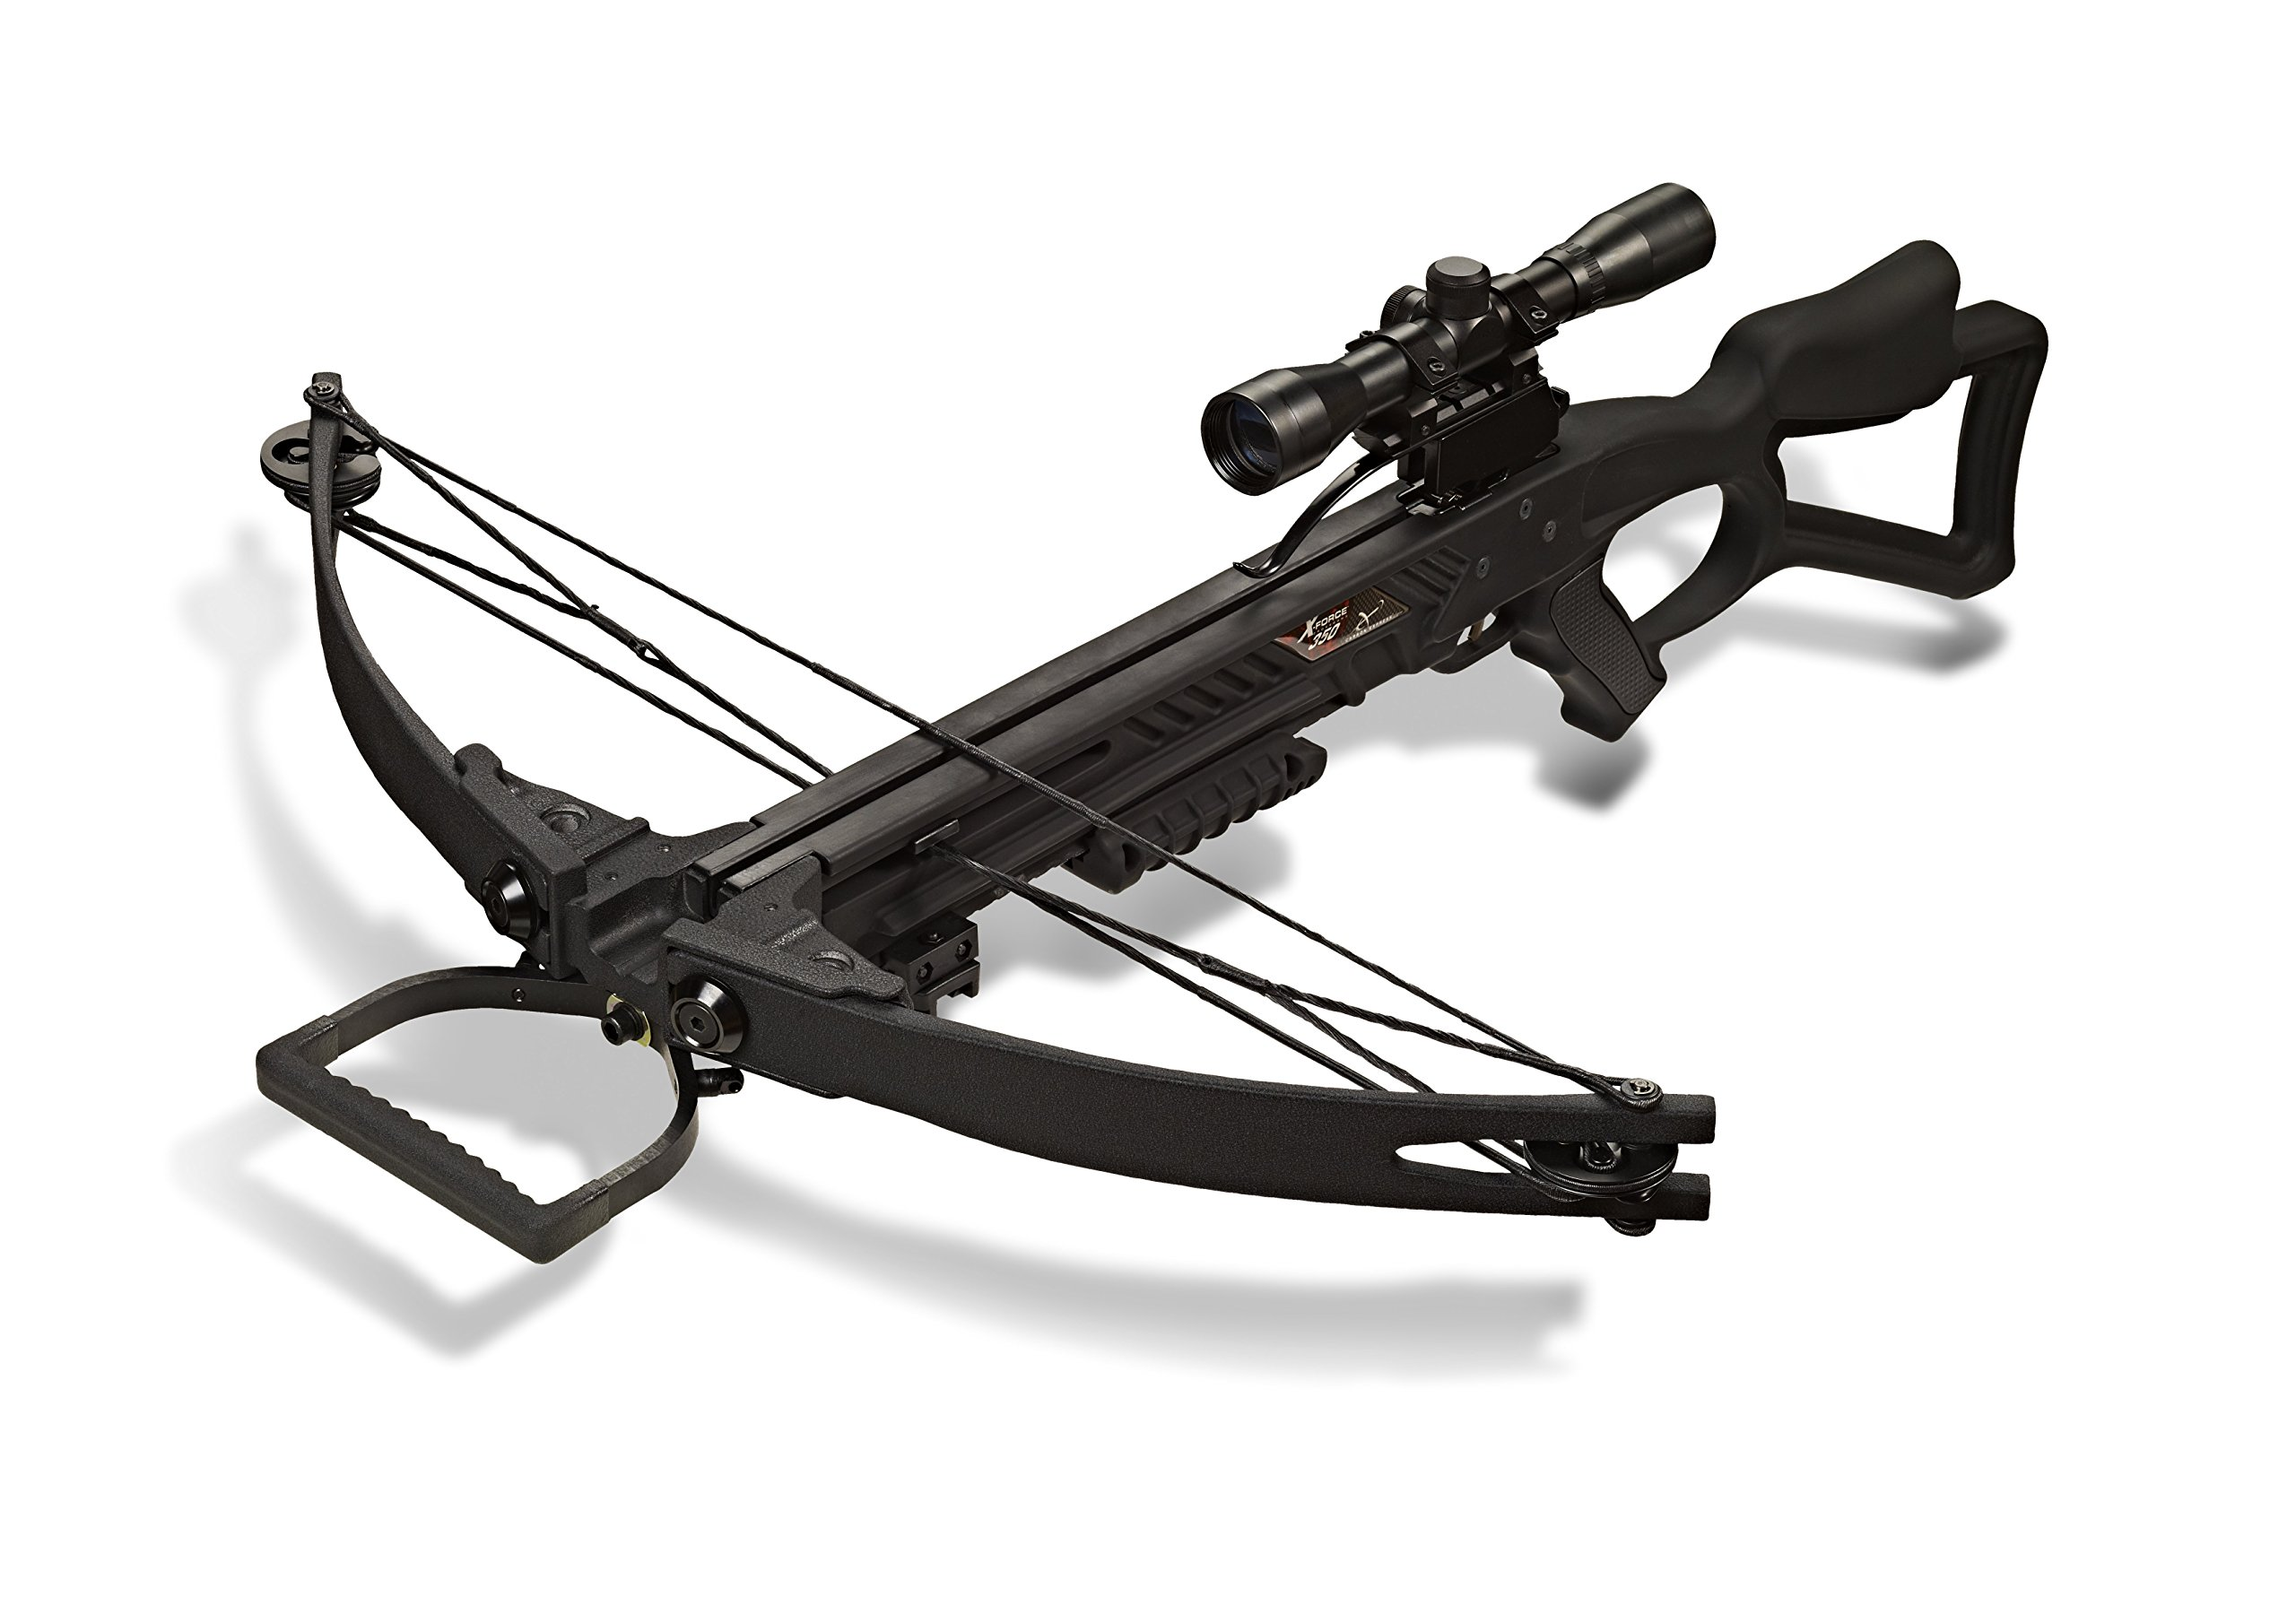 Carbon Express 20271 X-Force 350 Crossbow Kit (Rope Cocker, 3 Arrow Quiver, 3 Crossbolts, Rail Lubricant, 3 Practice Points, 4x32 Scope), Black by Carbon Express (Image #2)